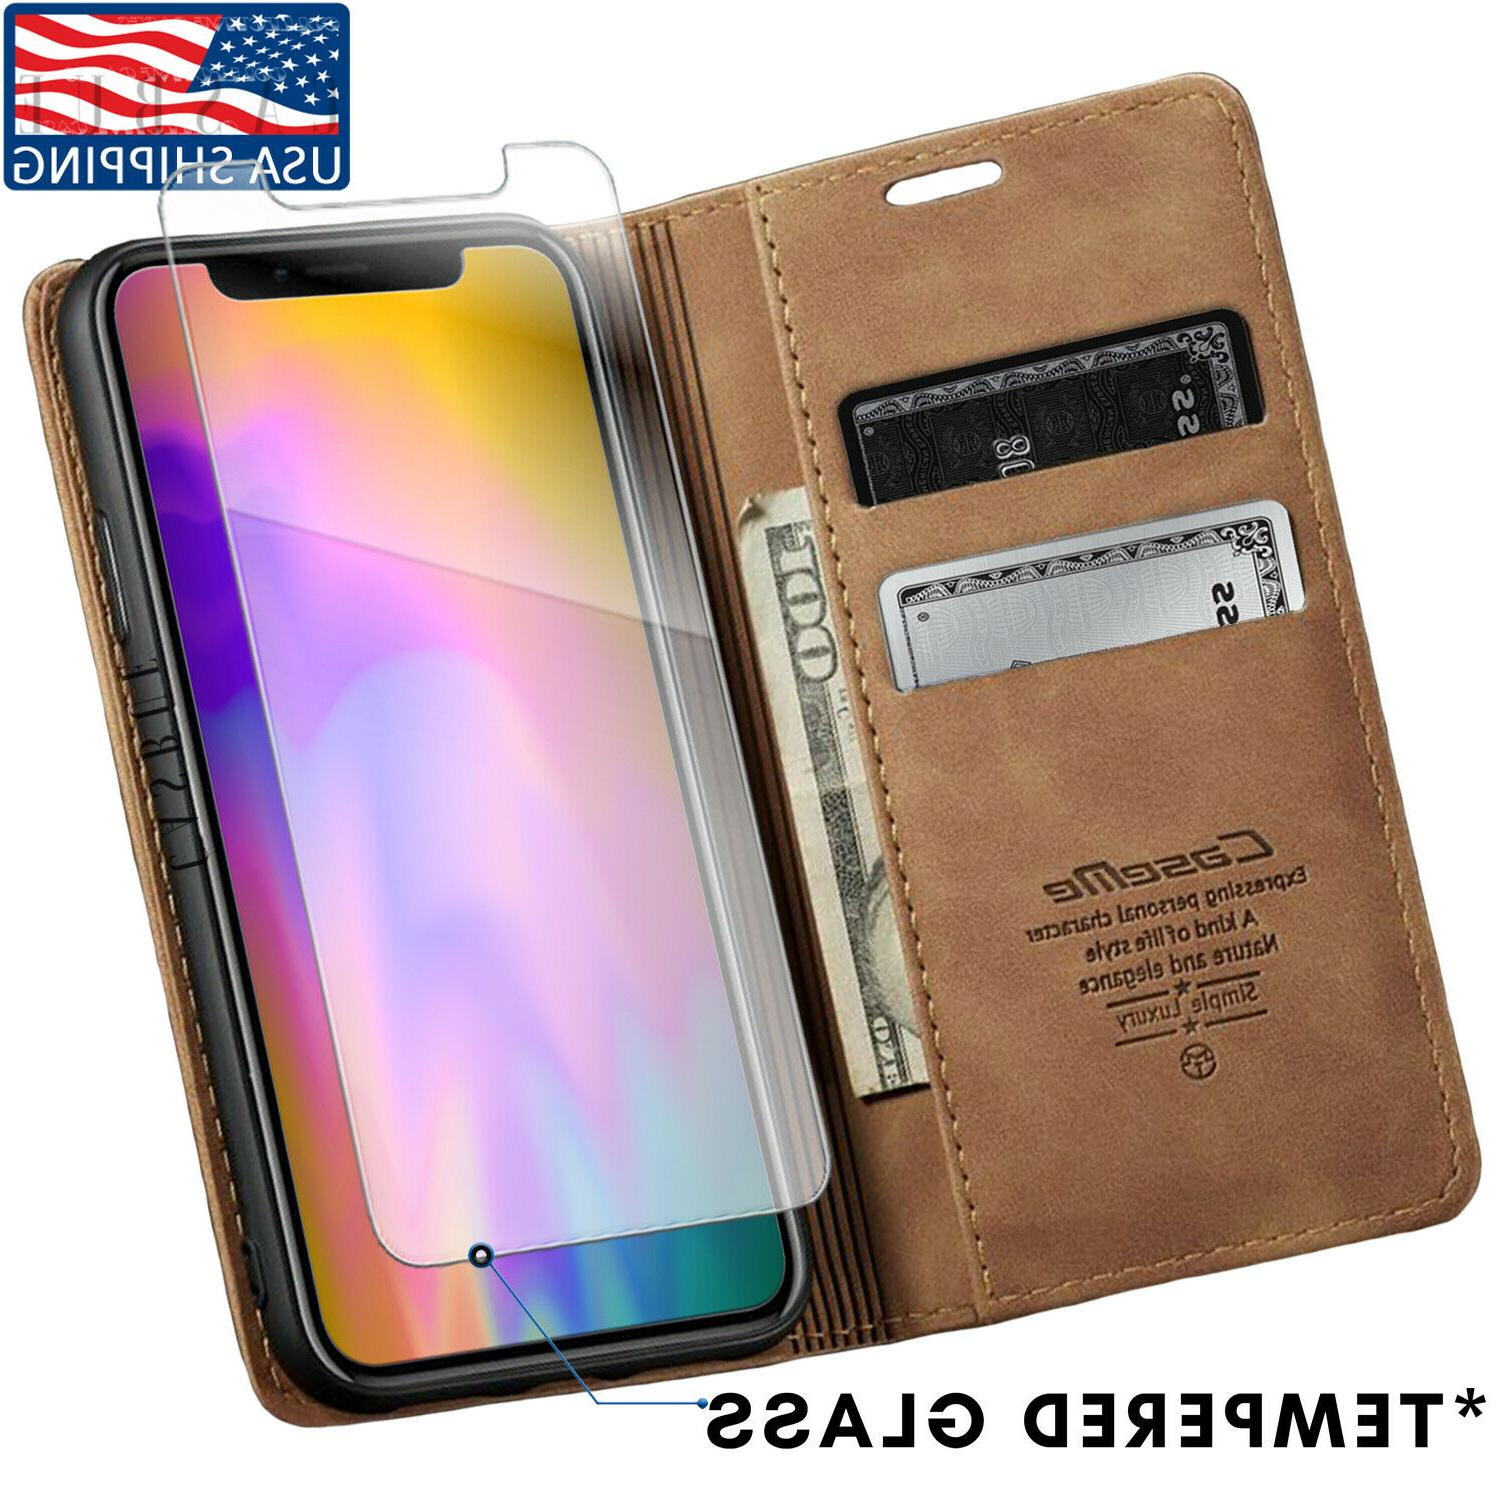 magnetic closure leather wallet case silicone phone